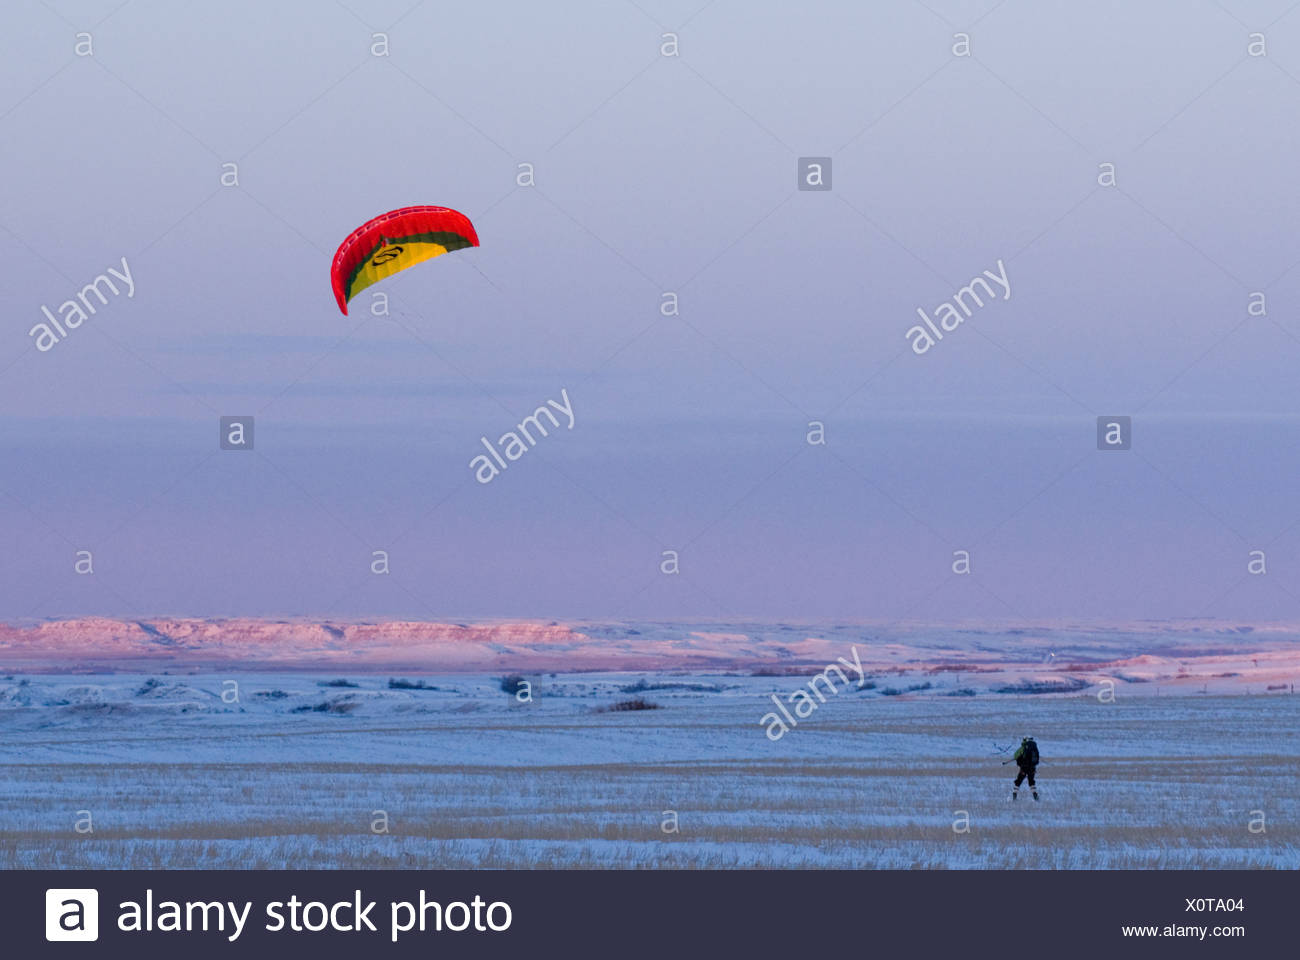 Snowkiting in North Dakota with the last light of day during the 2XtM expedition. - Stock Image